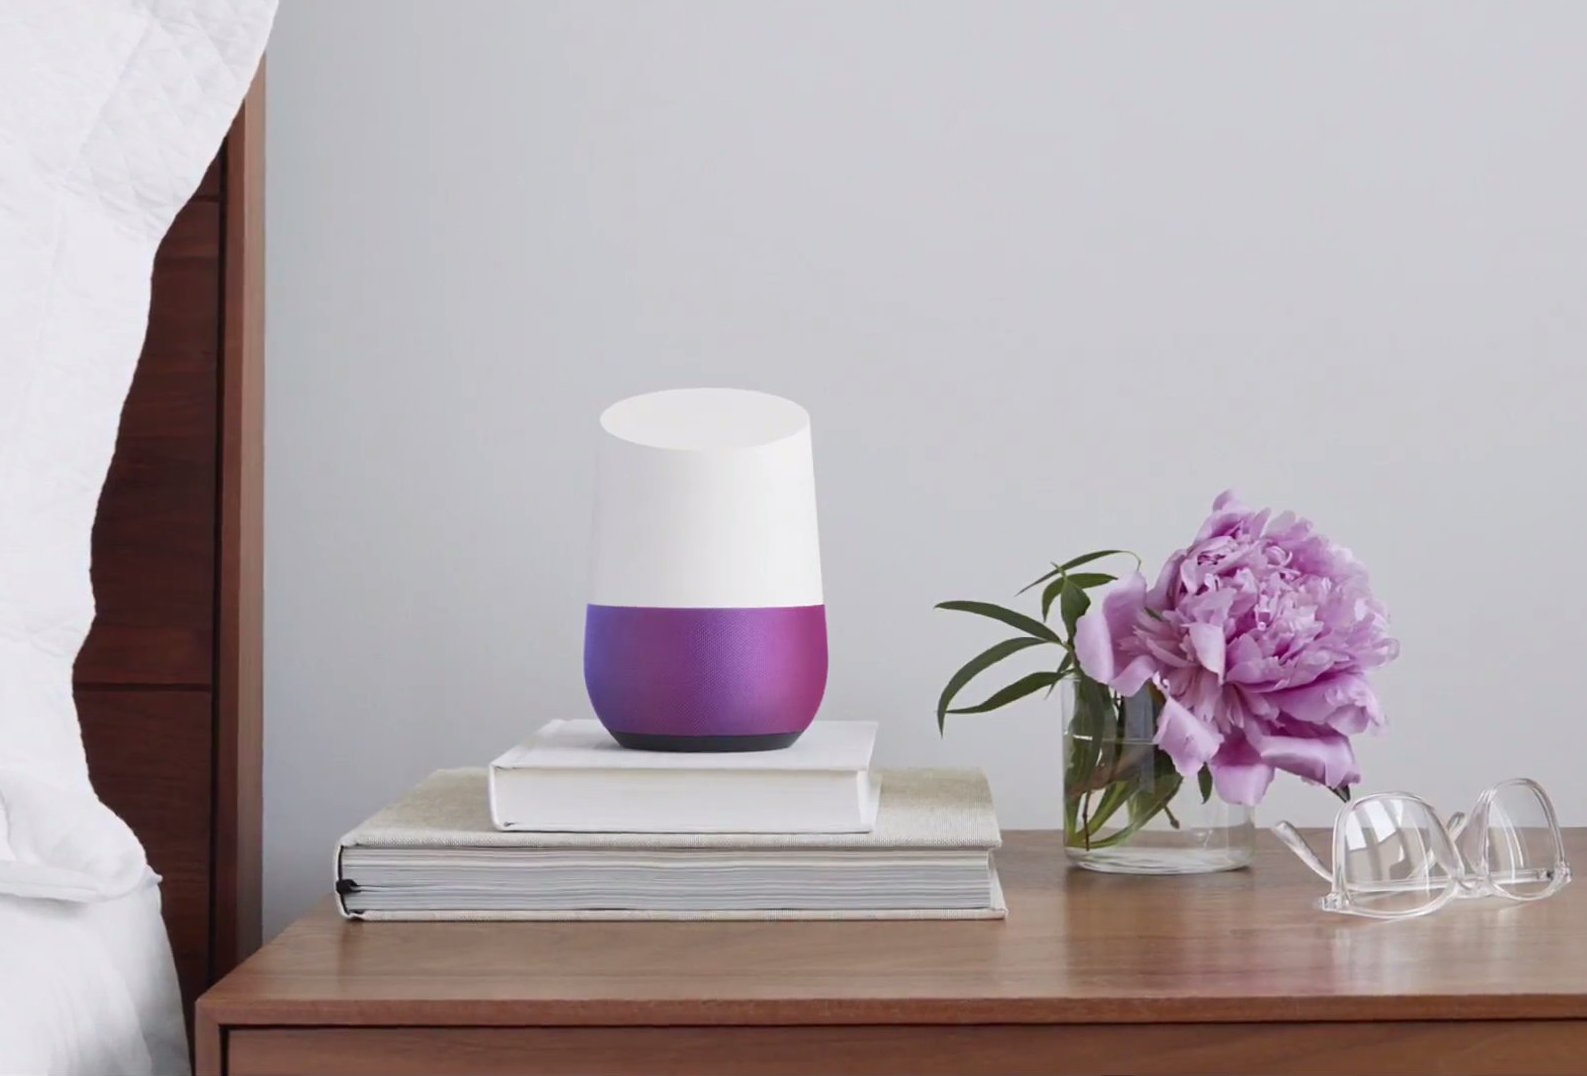 A Google Home device on a bedside table.